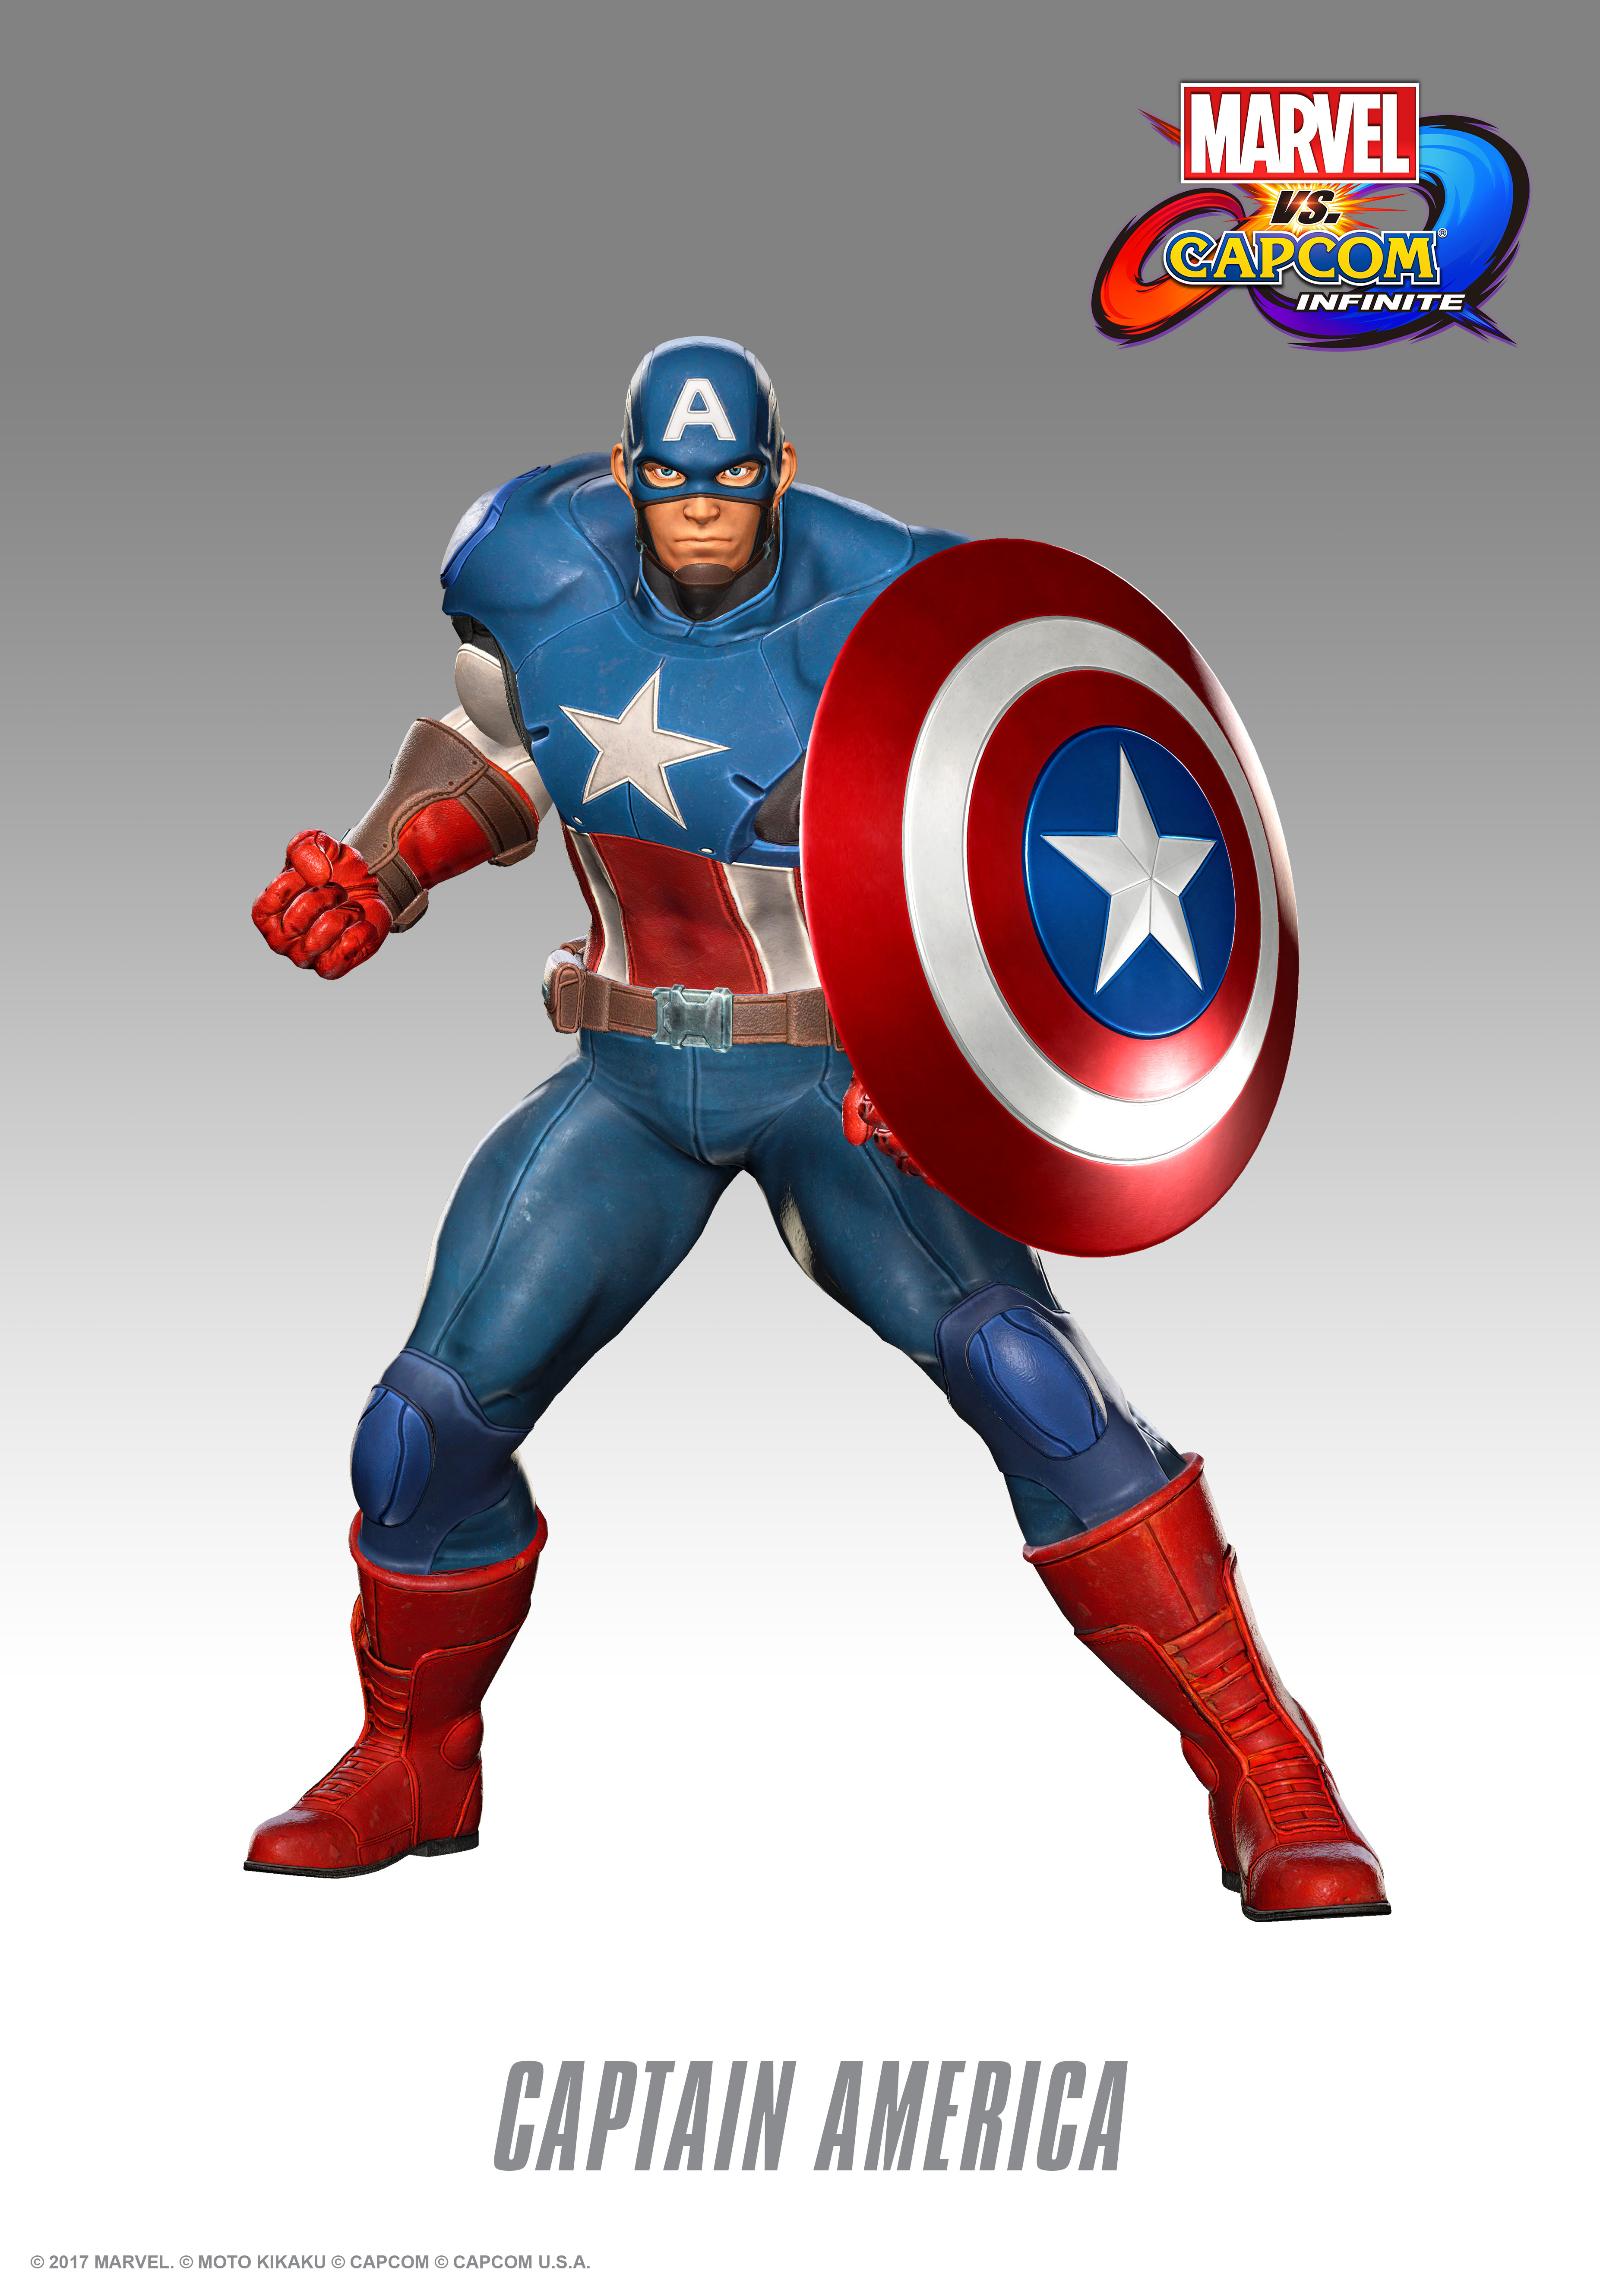 captain america from the marvel video games. Black Bedroom Furniture Sets. Home Design Ideas